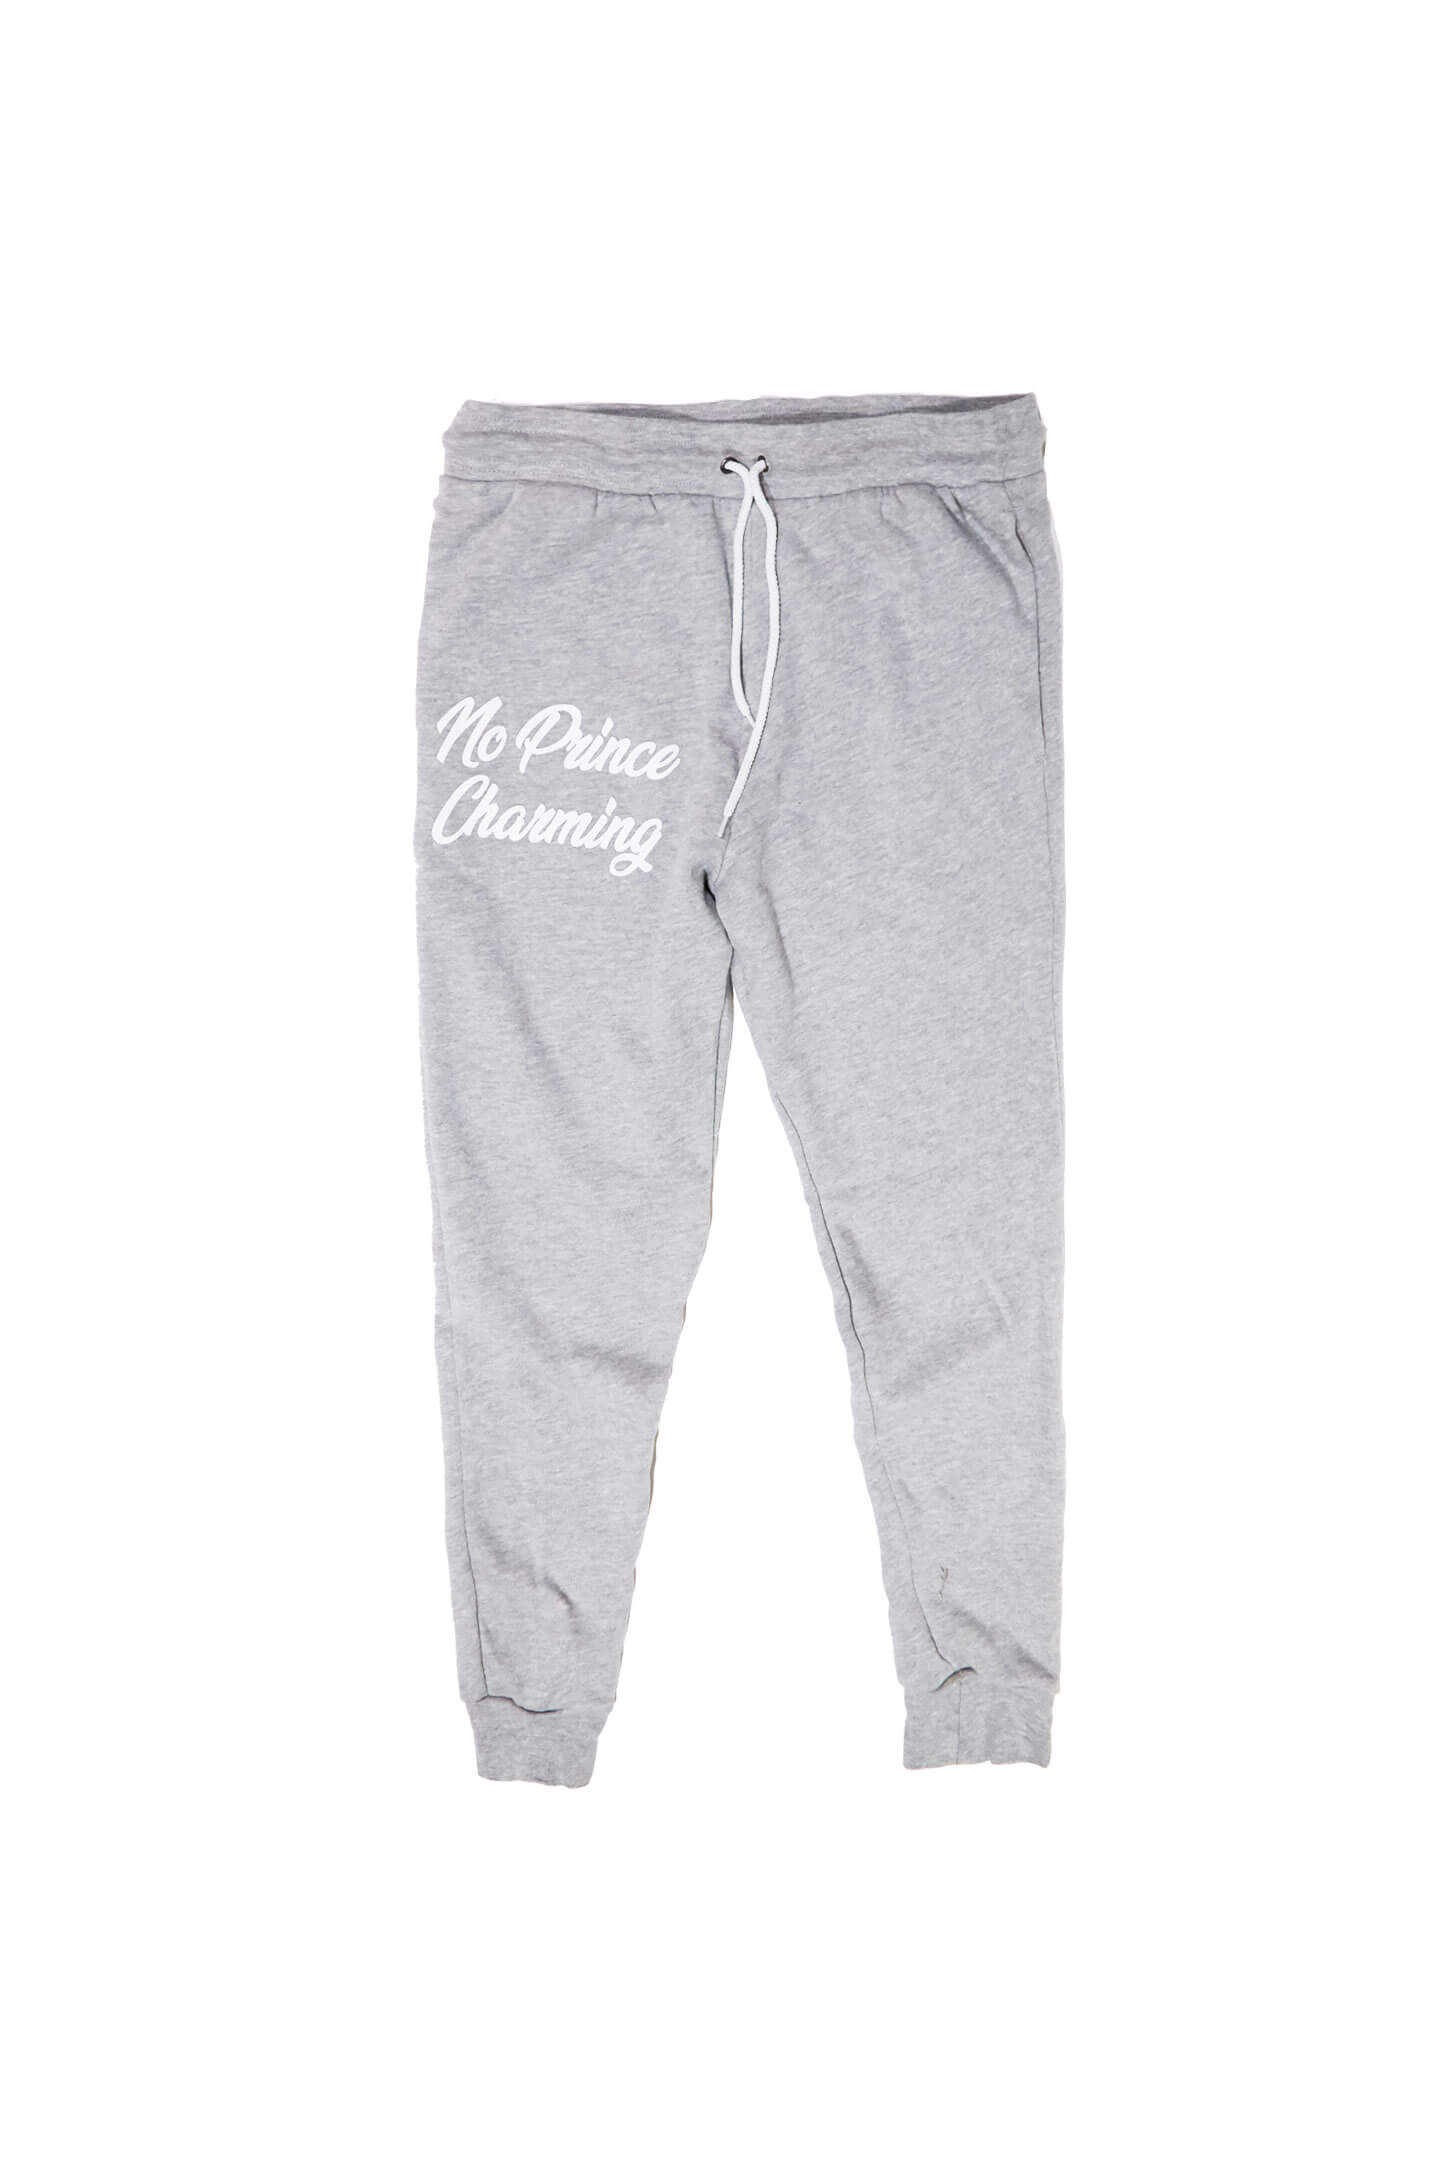 CLASSIC FLEECE JOGGERS - LIGHT GREY